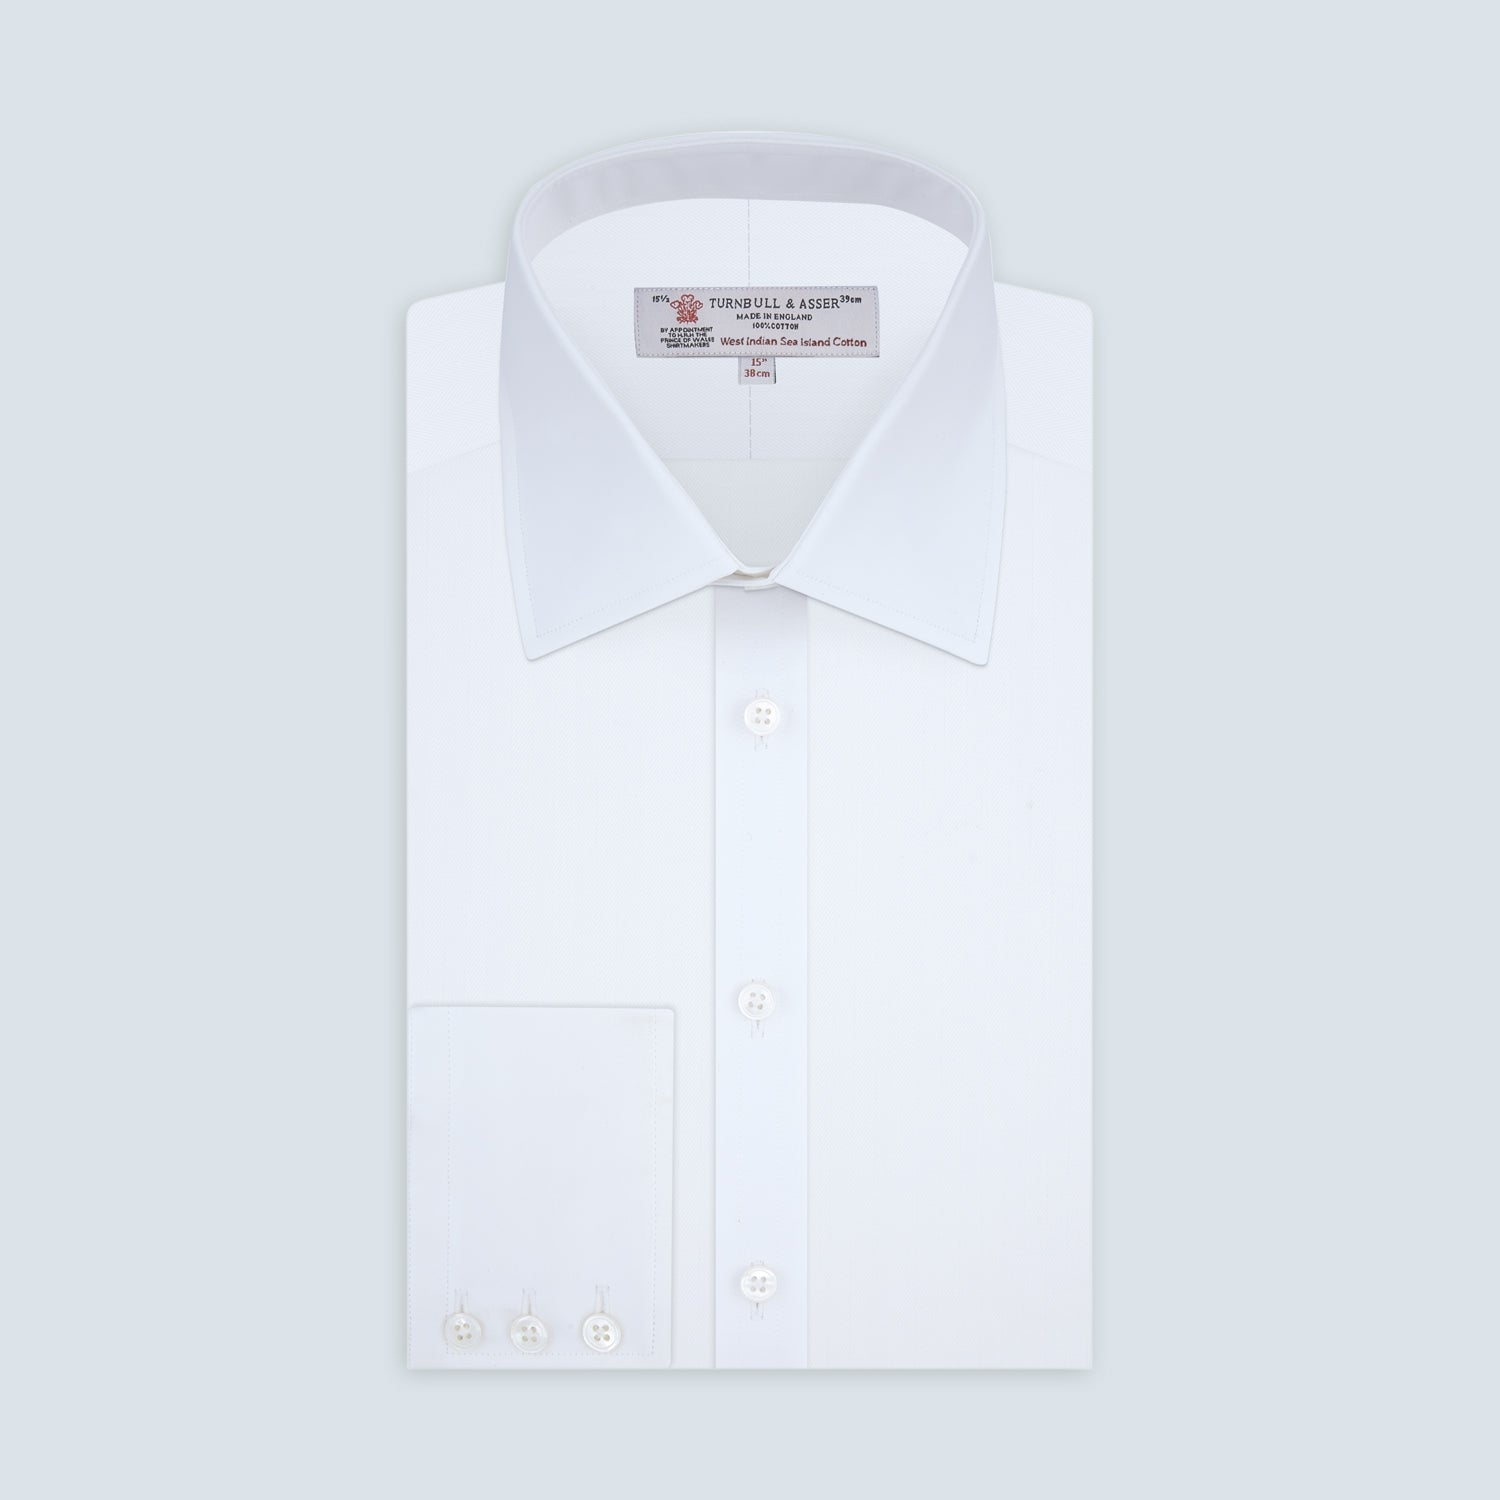 White Self-On-Self Herringbone Sea Island Quality Cotton Shirt with Regent Collar and 3-Button Cuffs